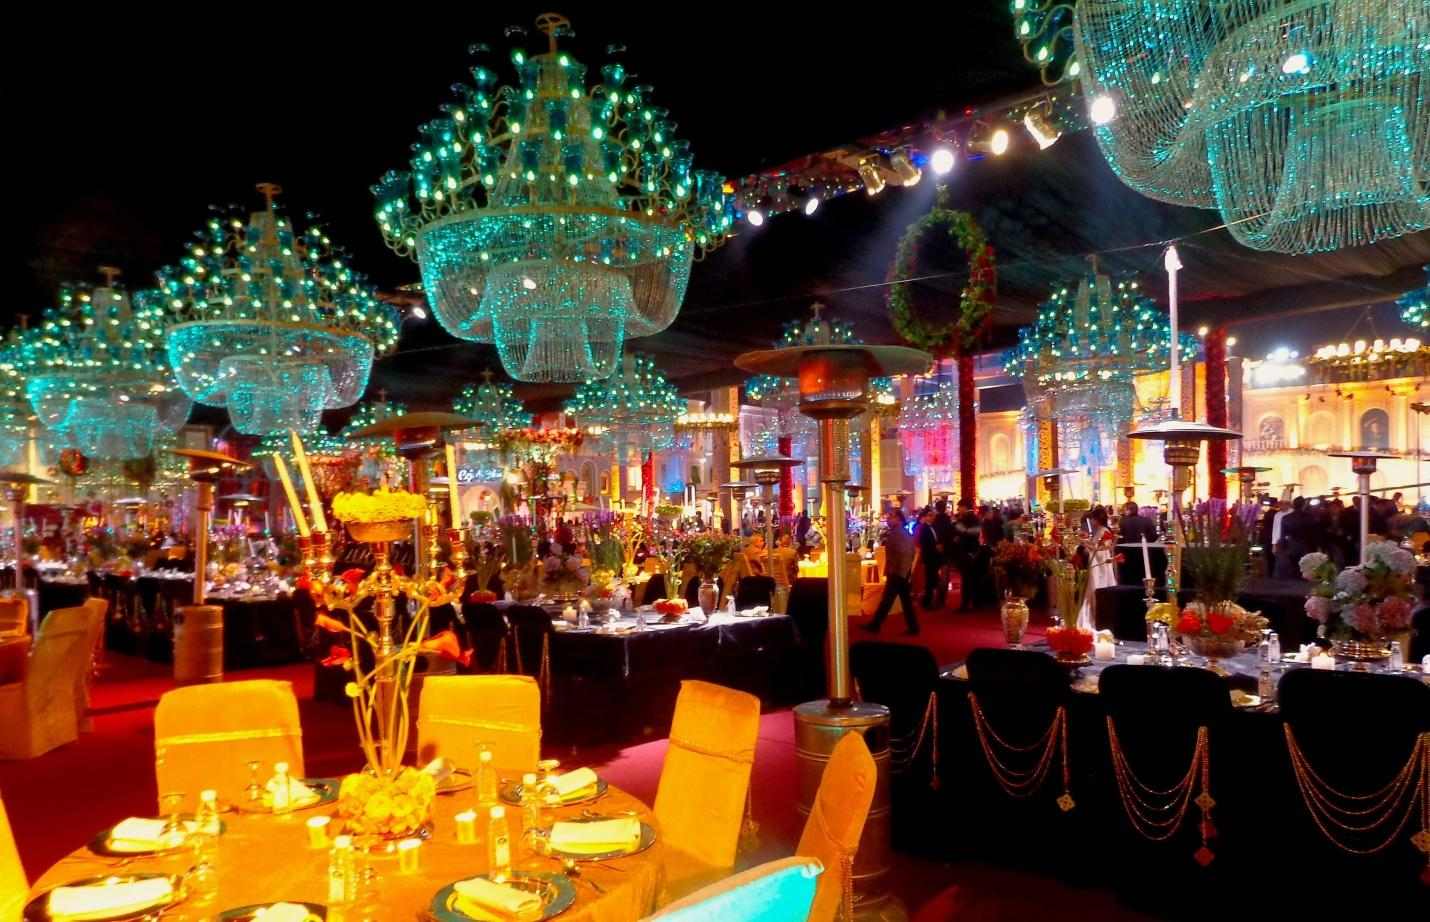 http://exclusiveprivateevents.com/wp-content/gallery/india-wedding-in-agra/chandeller-over-Dinner-tables.jpg